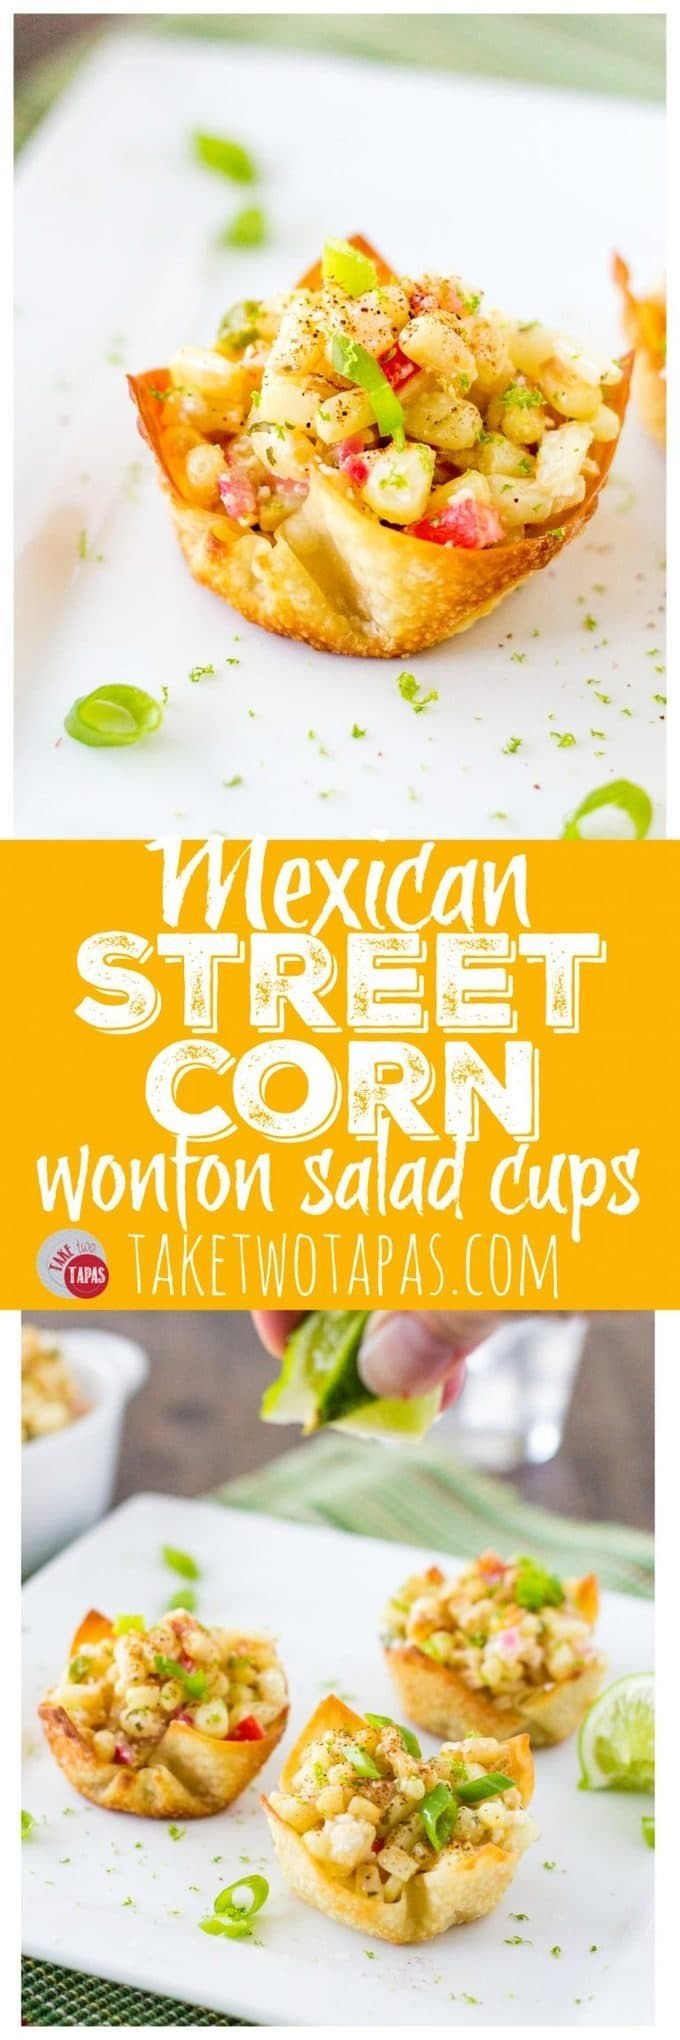 These Mexican Street Corn Salad Wonton Cups are the bomb! Roasted corn combined with jalapeno, red onions, sour cream, Cojita cheese, and some chili powder for spice makes a great party appetizer or side dish. Mexican Street Corn Salad Wonton Cups Recipe | Take Two Tapas